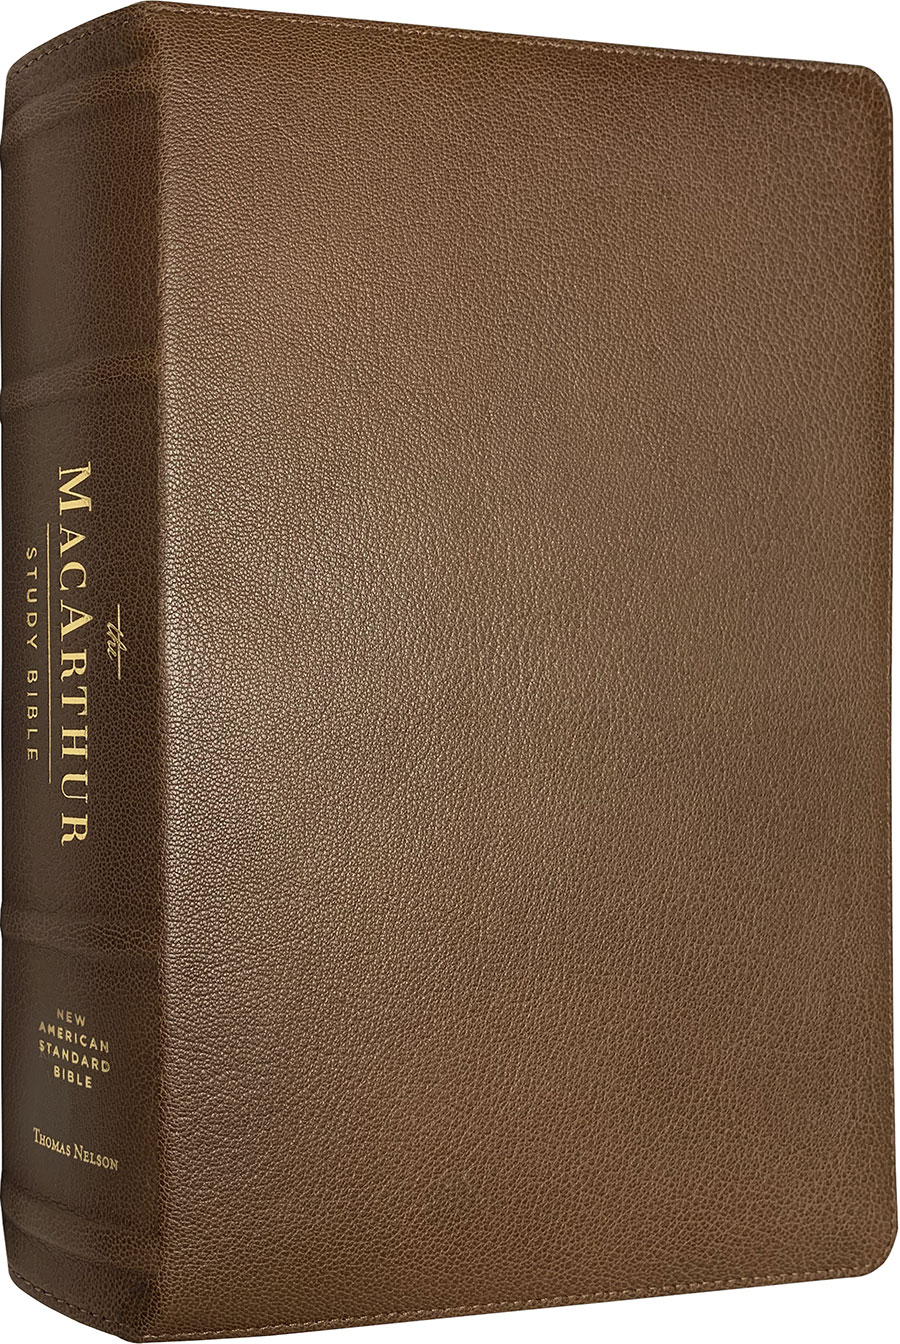 NAS MacArthur Study Bible (Second Edition) (Premium Leather)